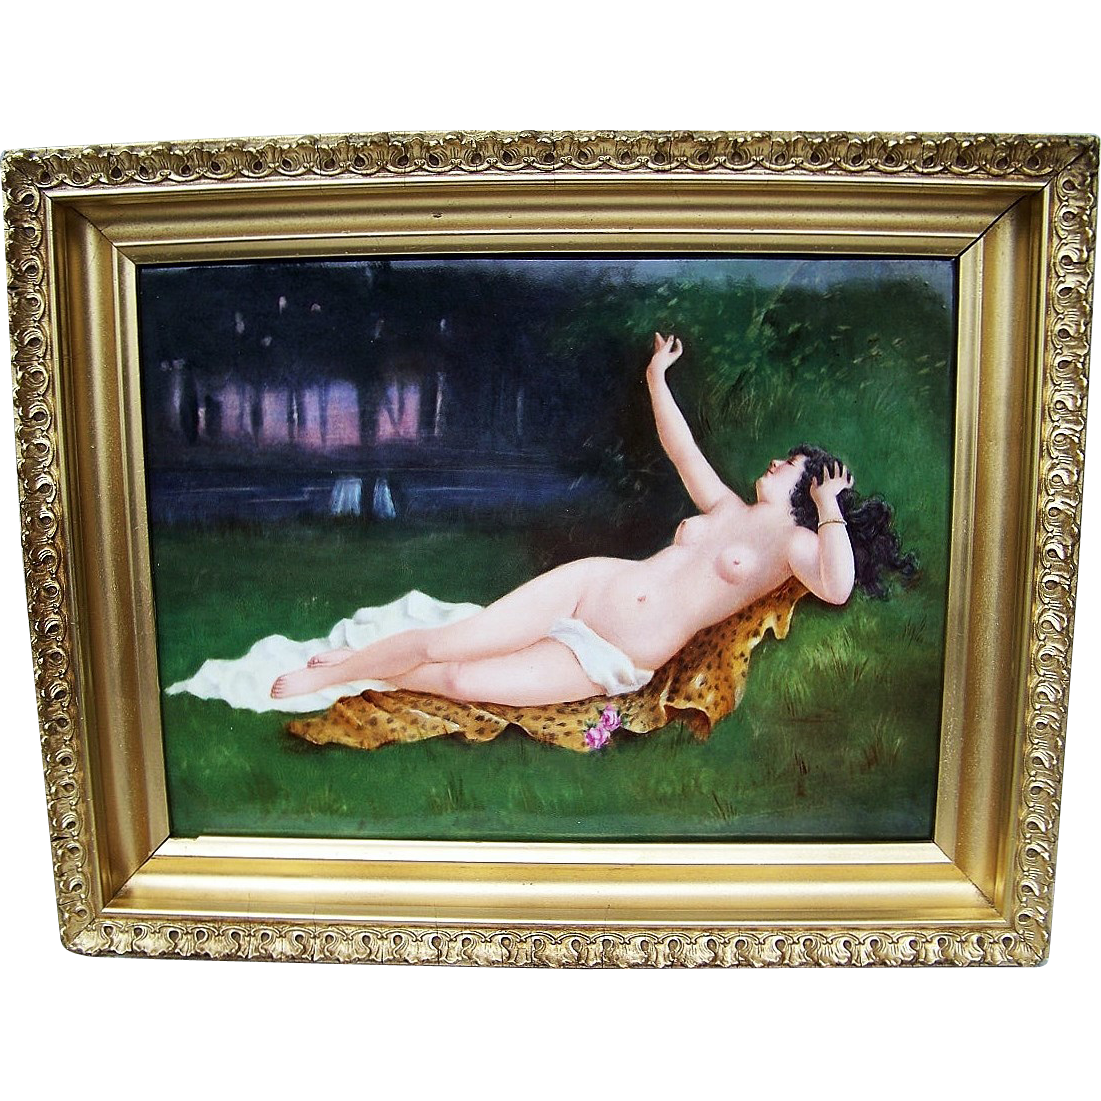 "Museum Quality D & Co. France Limoges 1900's Hand Painted ""Reclining Nude On A Leopard Skin"" 14-1/2"" x 11-1/2"" Plaque"